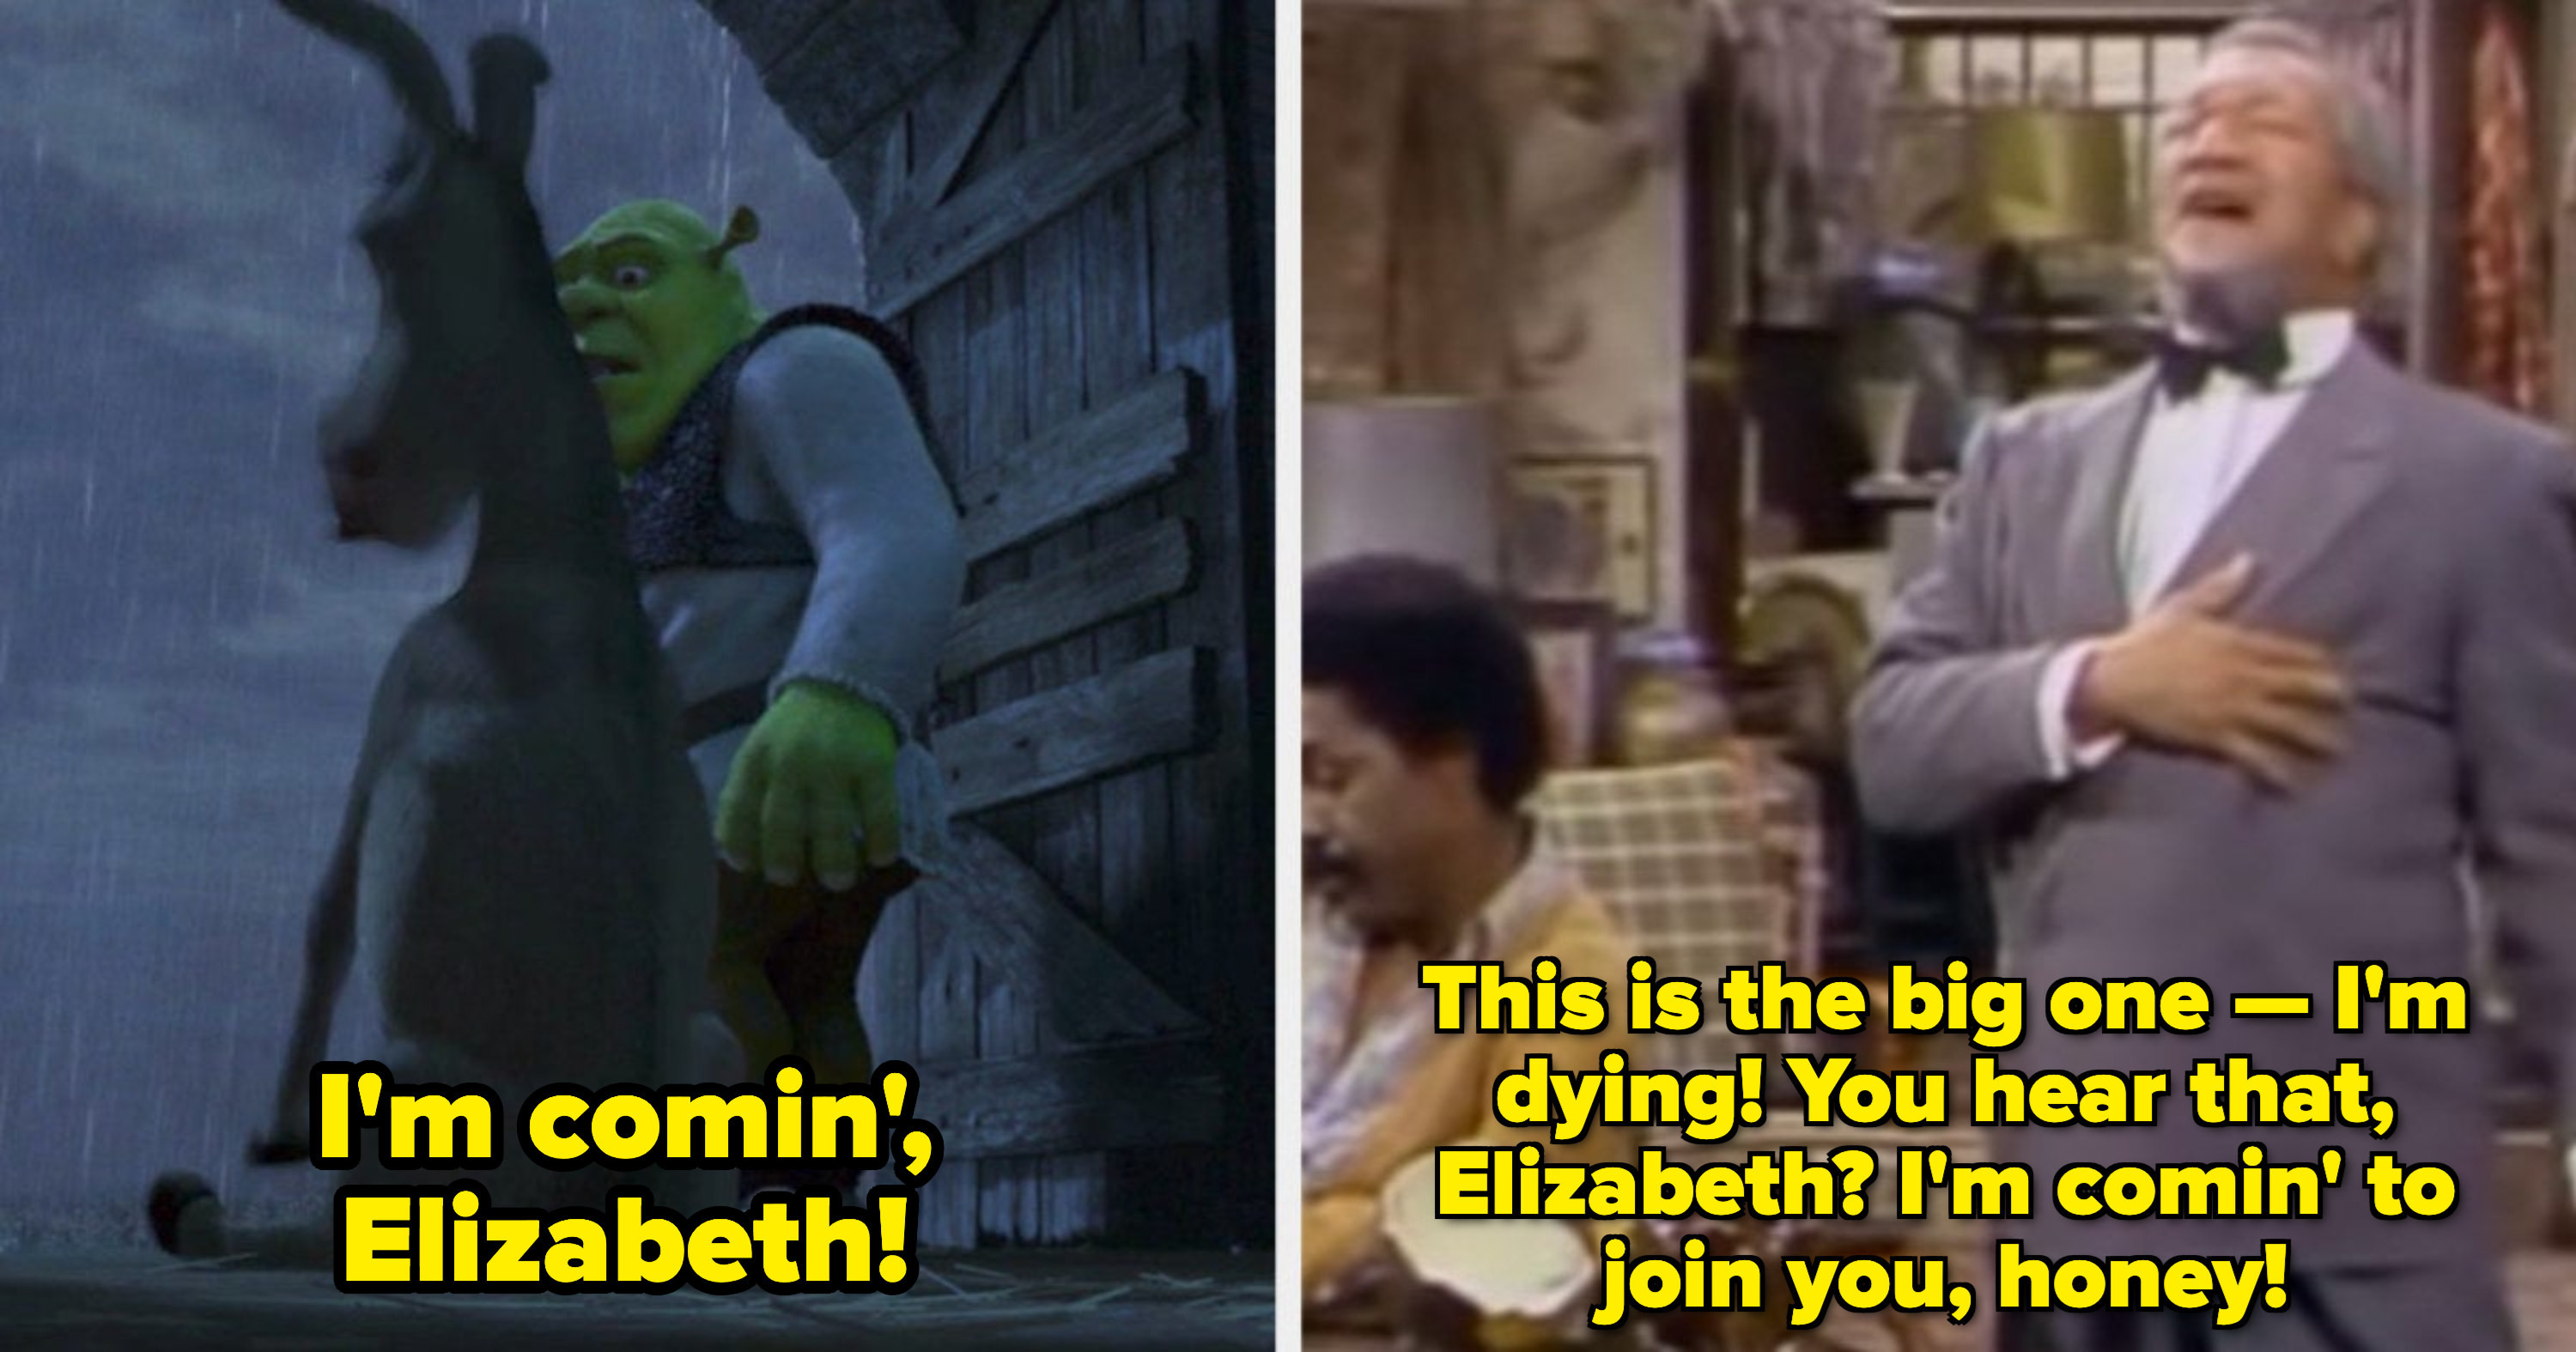 """Donkey fainting near the rain: """"I'm comin', Elizabeth!;"""" Fred Sanford holding his hand to his chest: """"This is the big one -- I'm dying! You hear that, Elizabeth? I'm comin' to join you, honey!"""""""